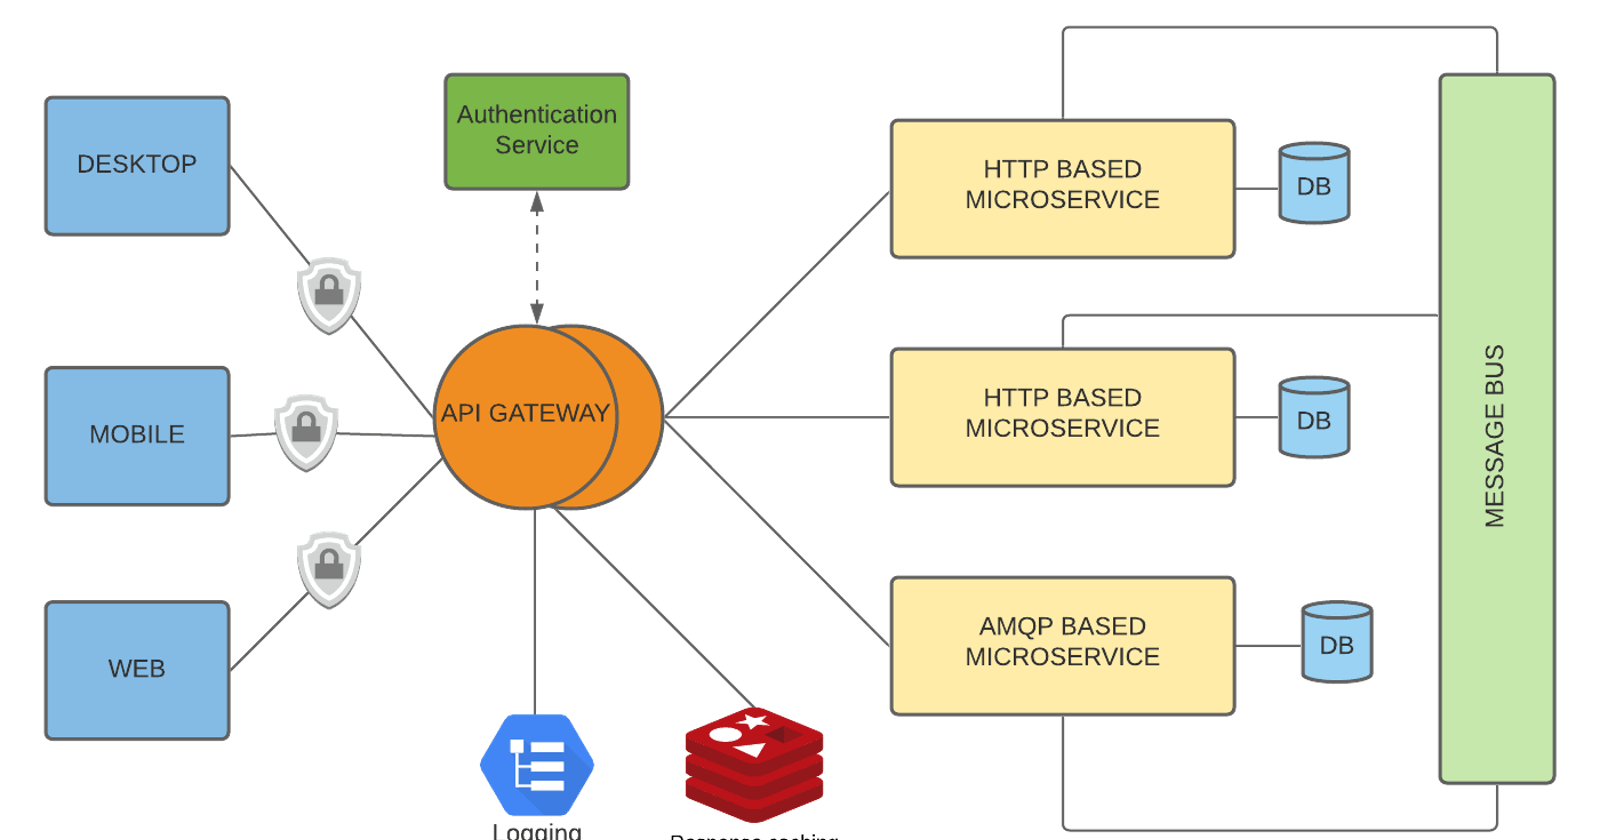 The concept behind API Gateway